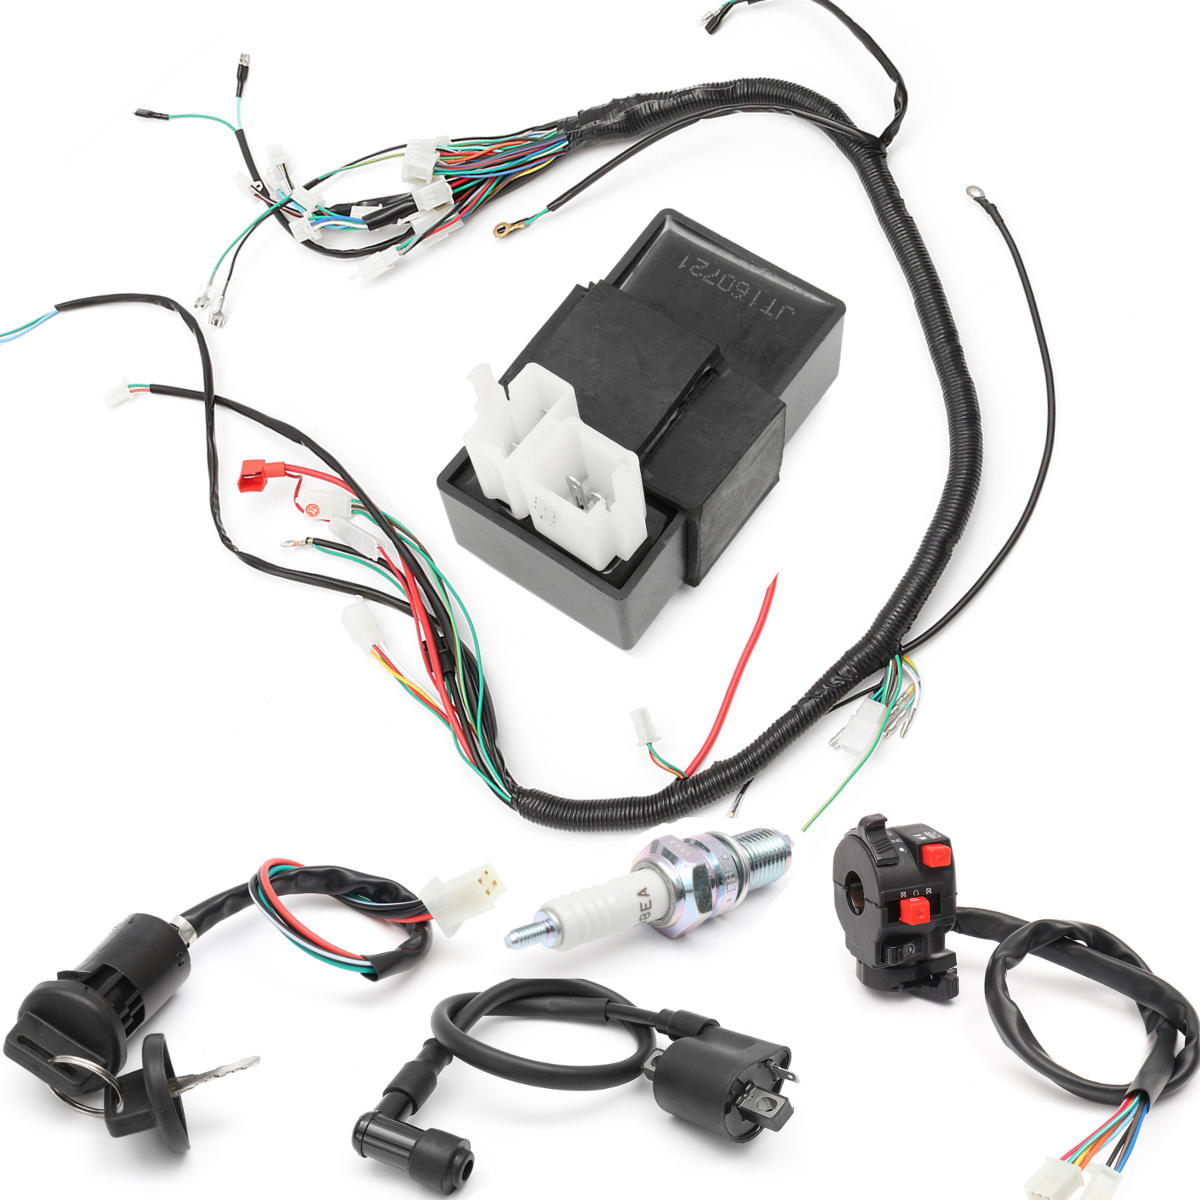 hight resolution of 150cc 200cc 250cc wiring harness loom solenoid coil regulator cdi water cooled 250cc chinese atv wiring harness